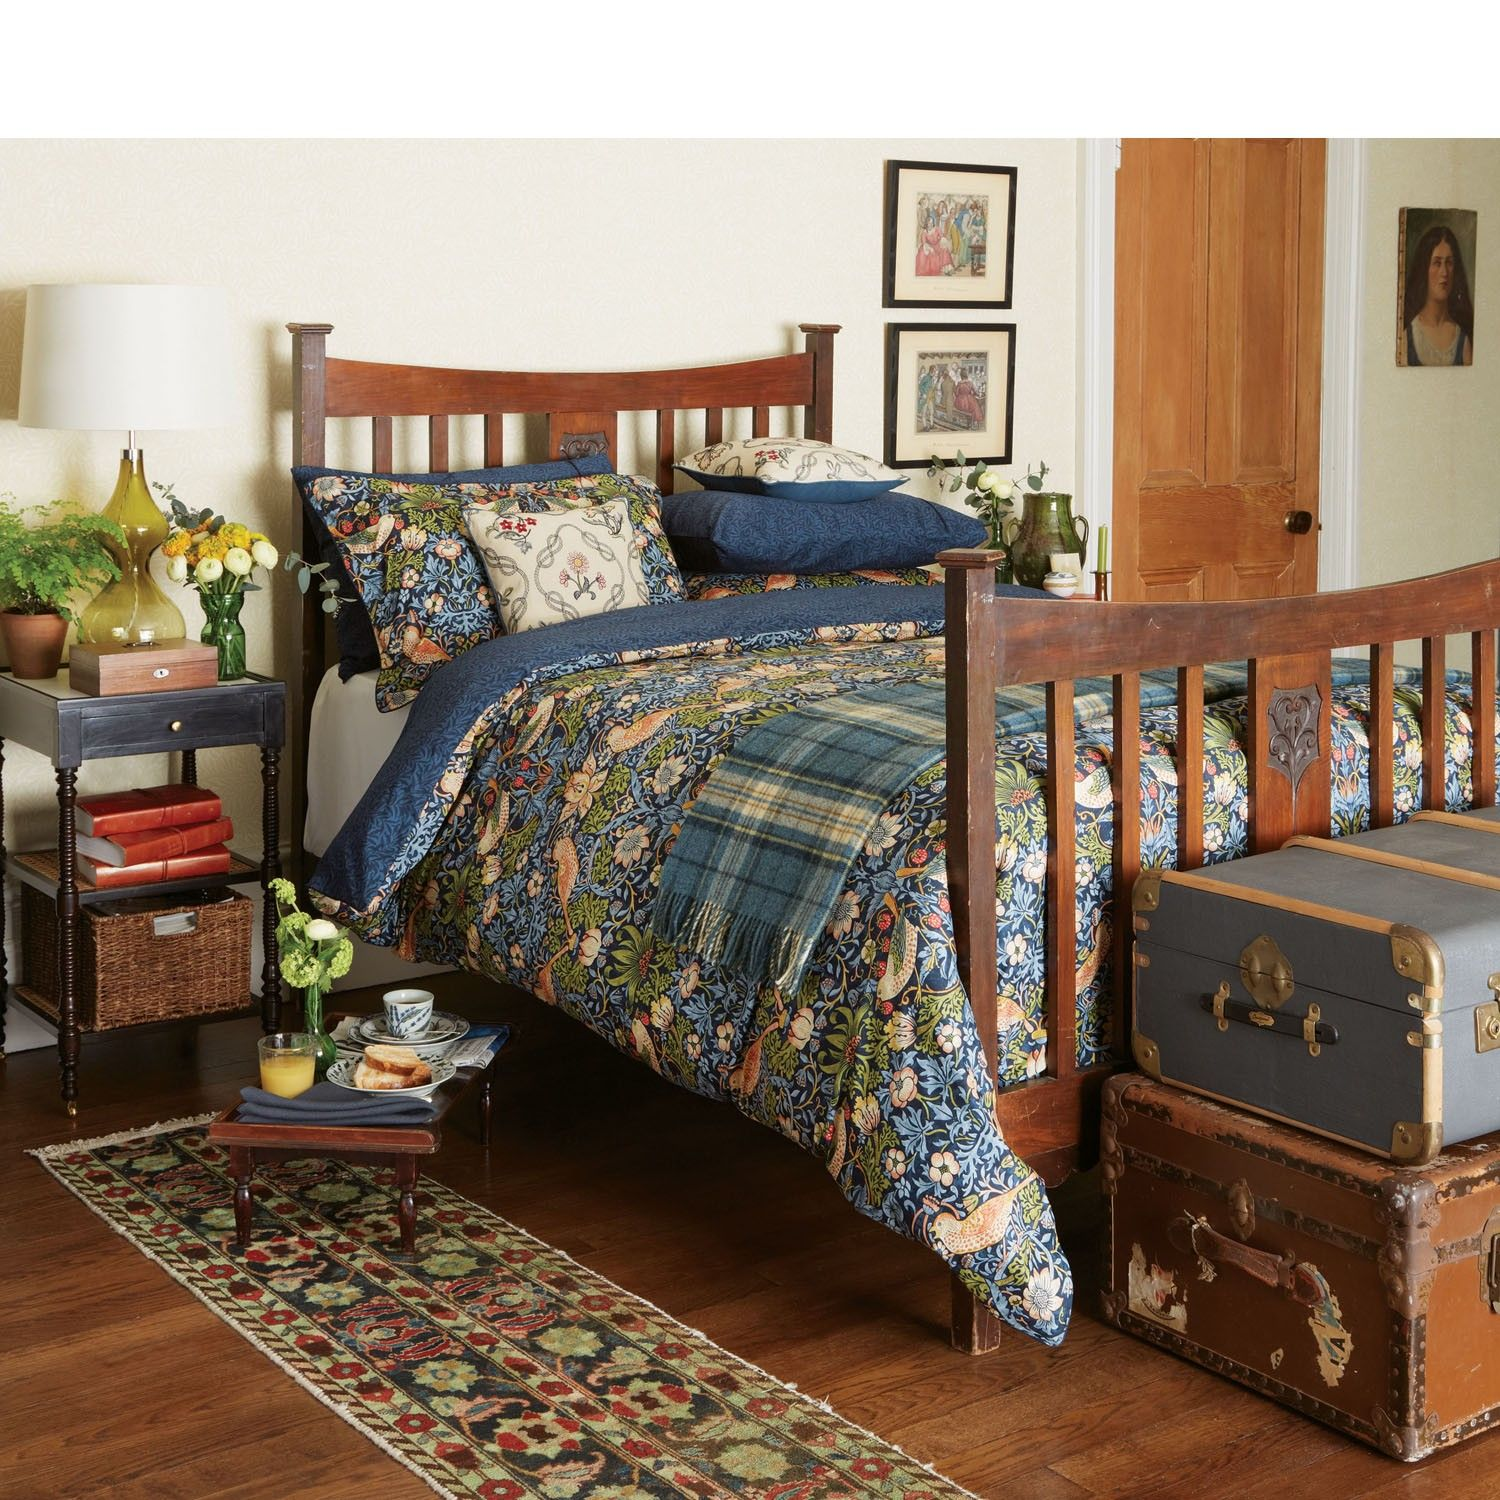 william morris furniture Google Search Bed linens